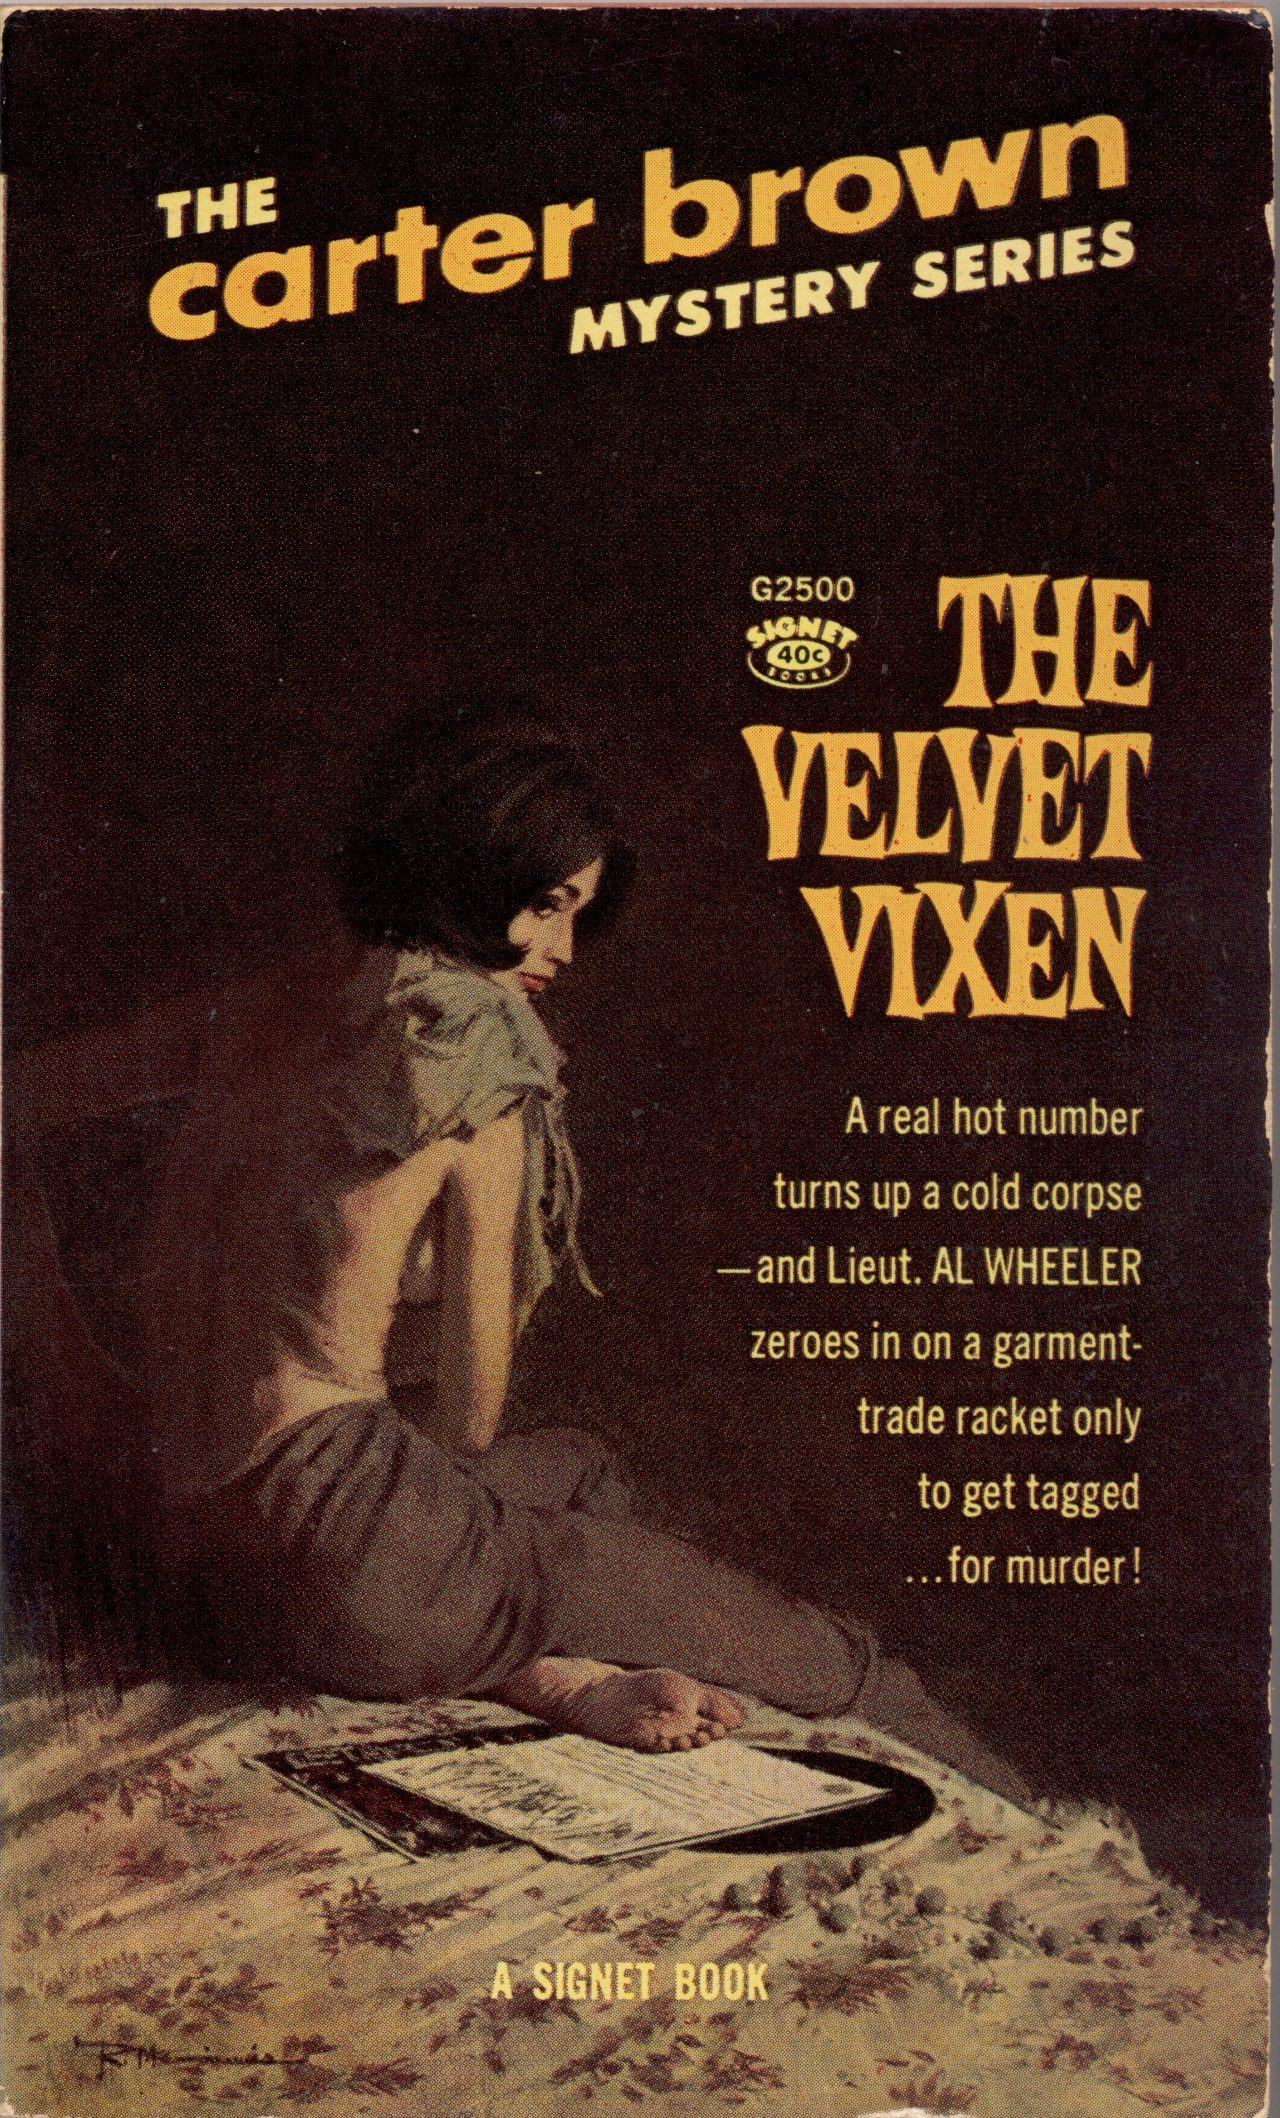 The Velvet Vixen by Carter Brown, 1964.